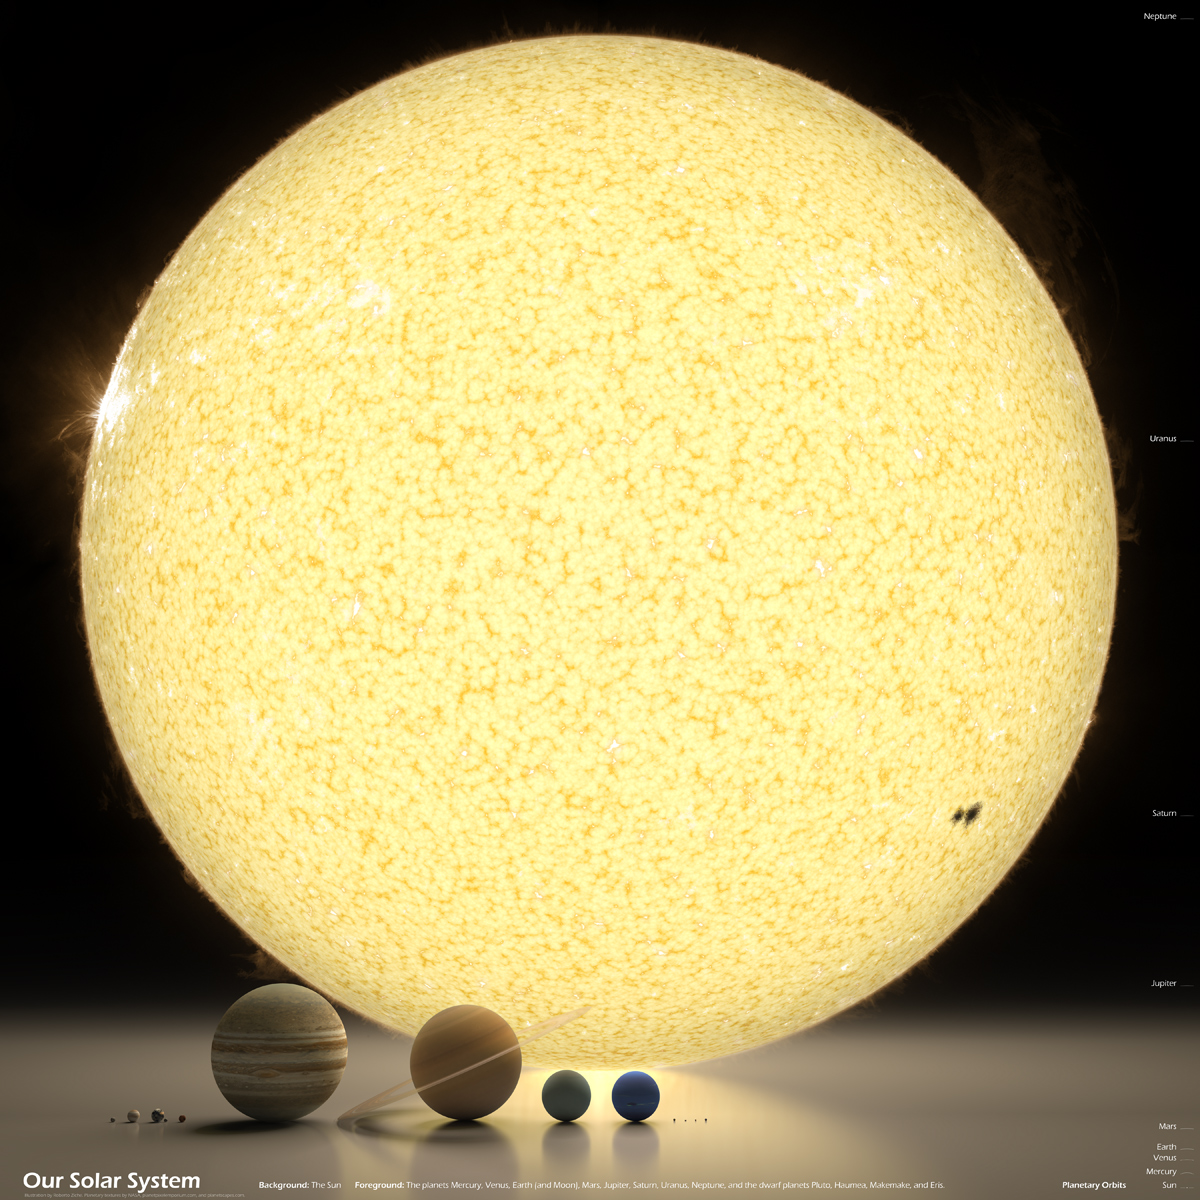 our solar system in perspective The Largest Creatures in the Ocean [Chart]